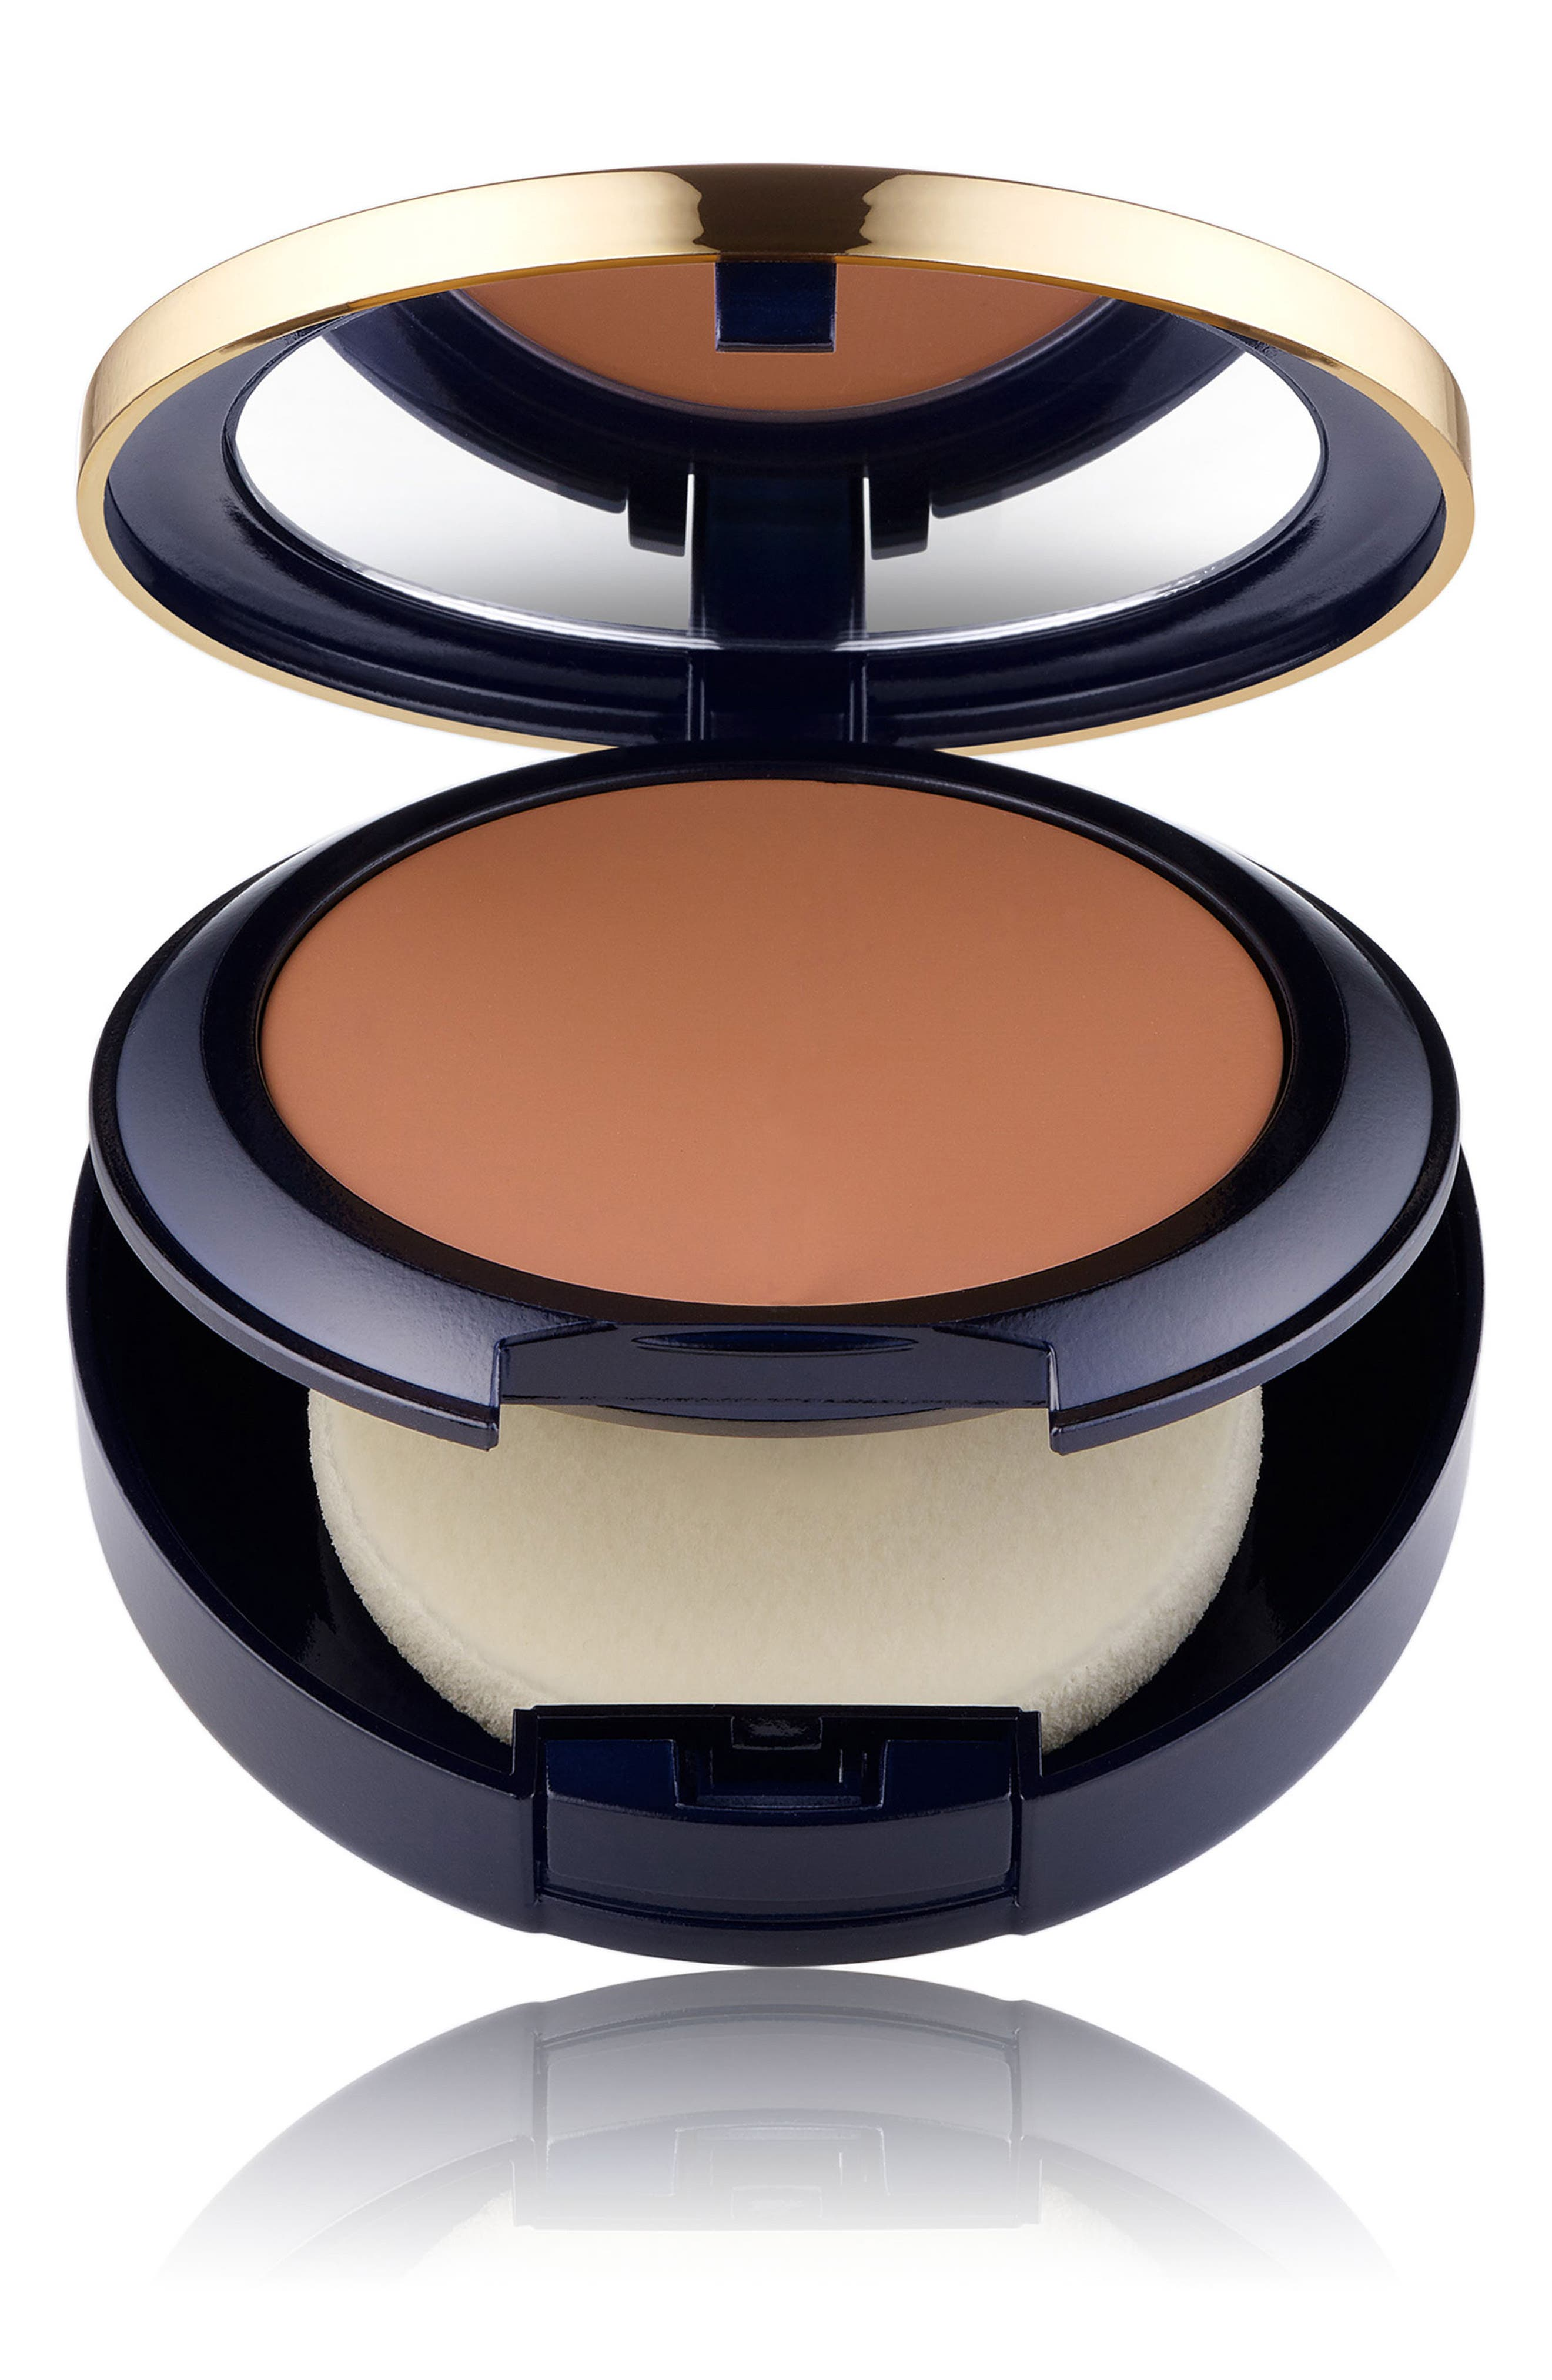 Estee Lauder Double Wear Stay In Place Matte Powder Foundation - 7C1 Rich Mahogany